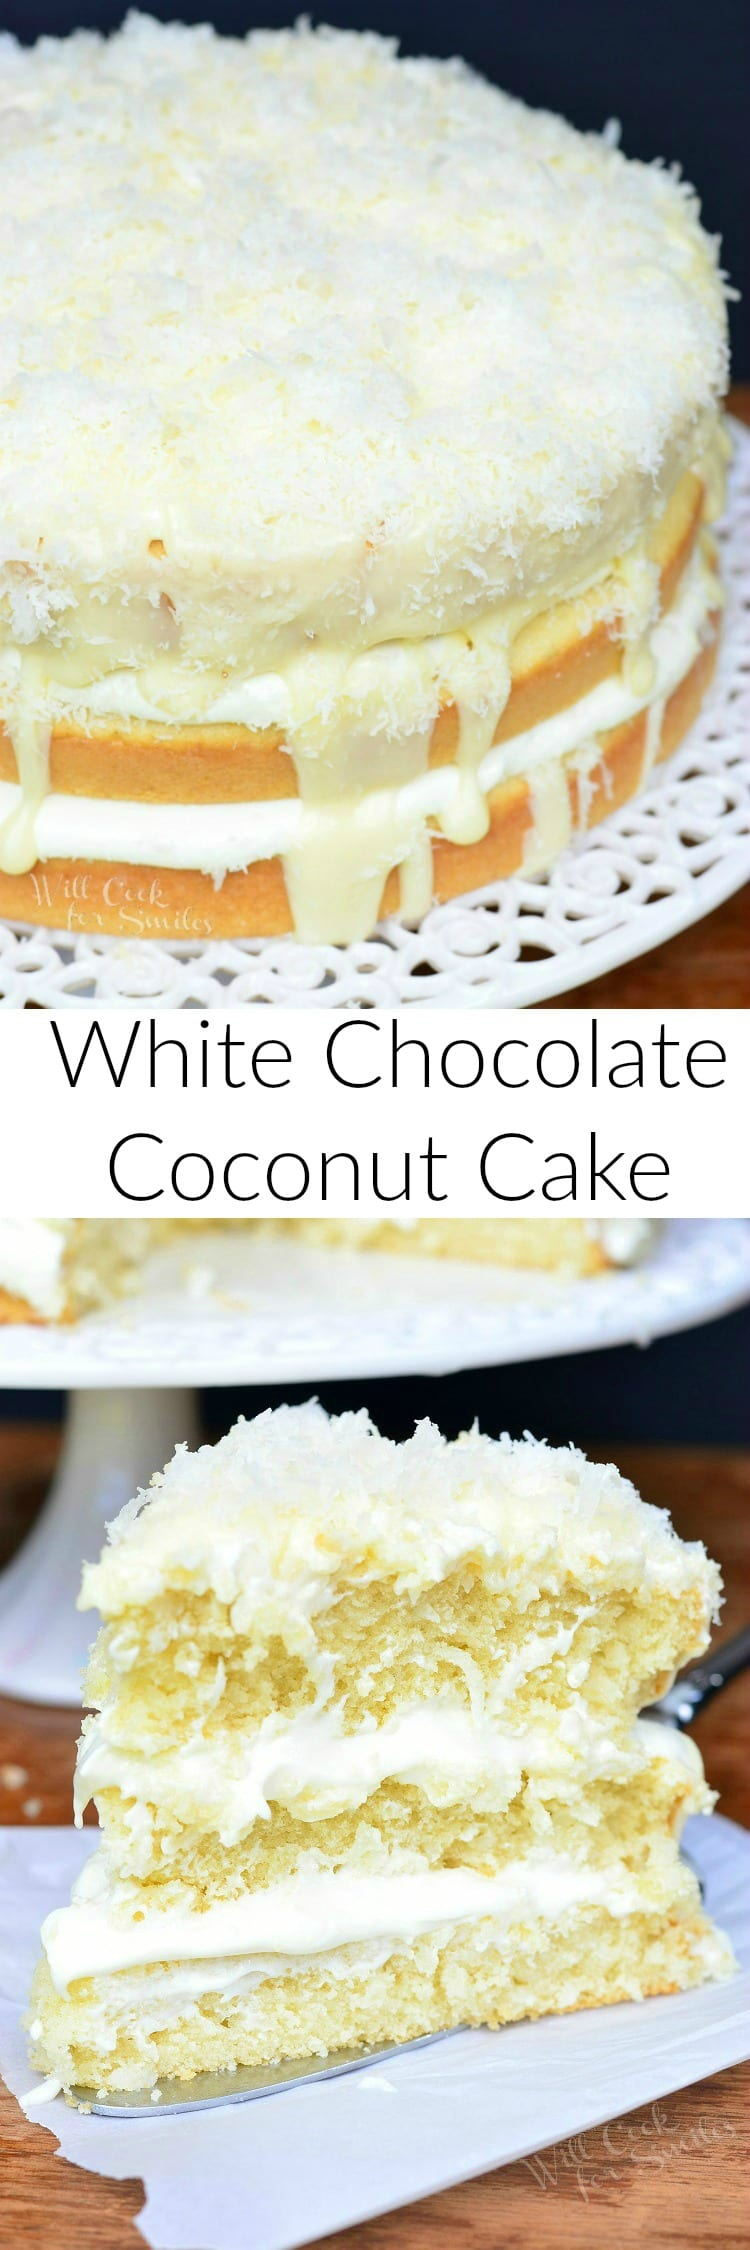 White Chocolate Coconut Cake. Soft, moist layered coconut cake with THE BEST white chocolate frosting and white chocolate ganache.